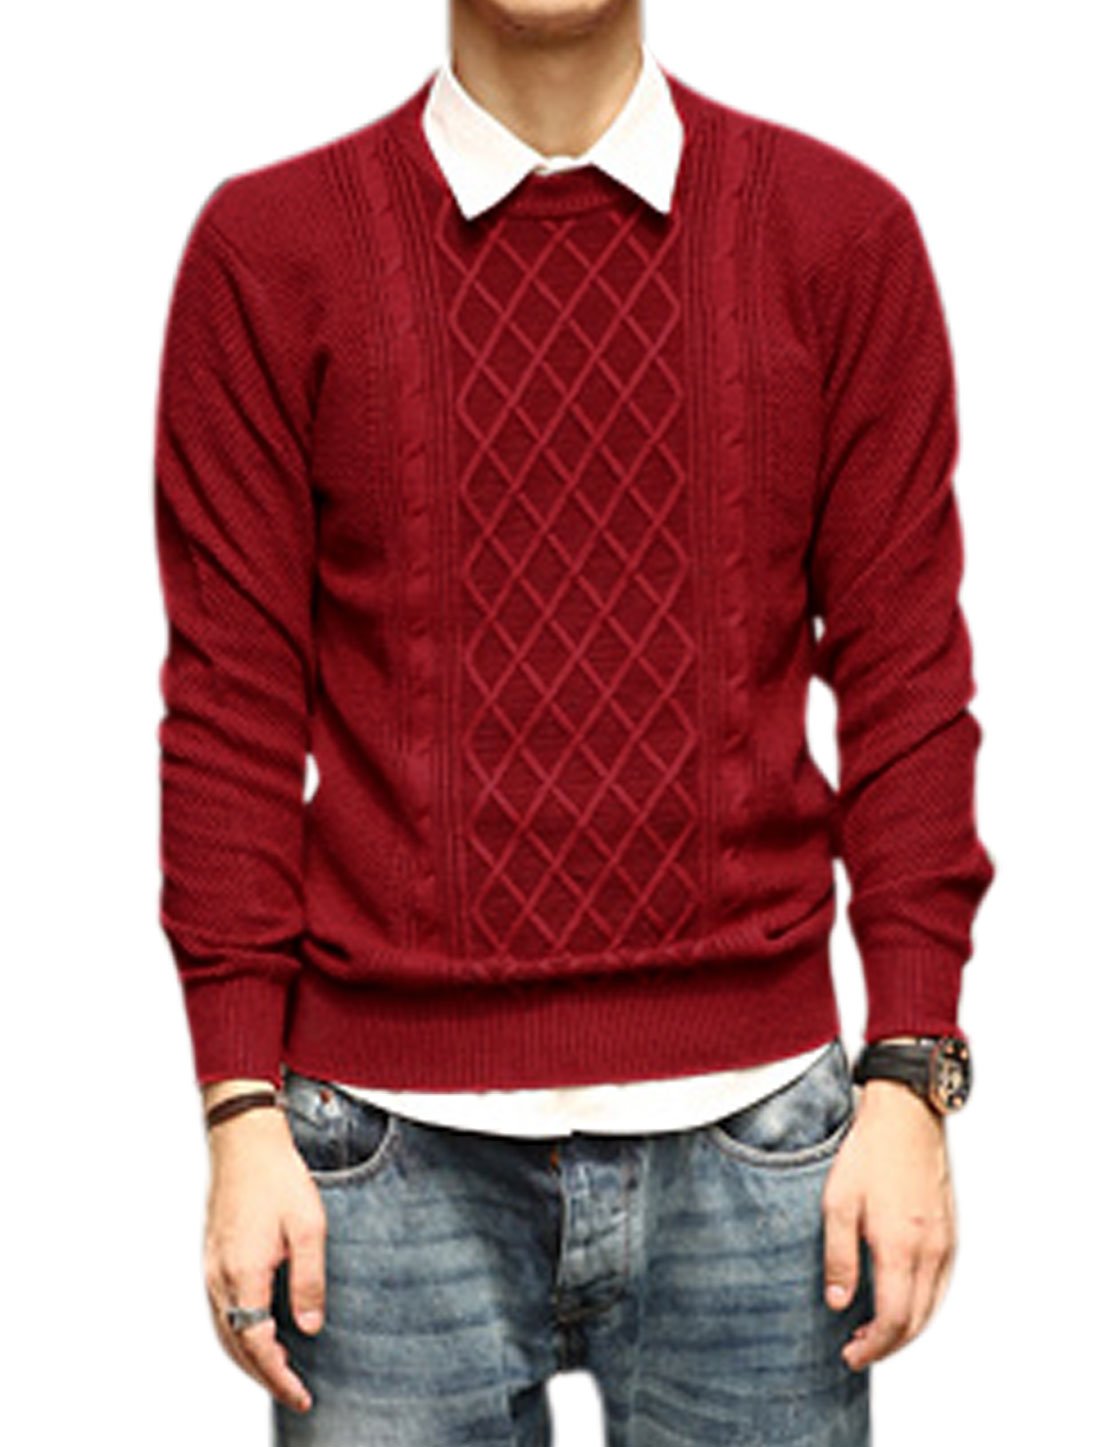 Long Sleeves Argyle Design Ribbed Cuffs Casual Sweater for Men Burgundy S